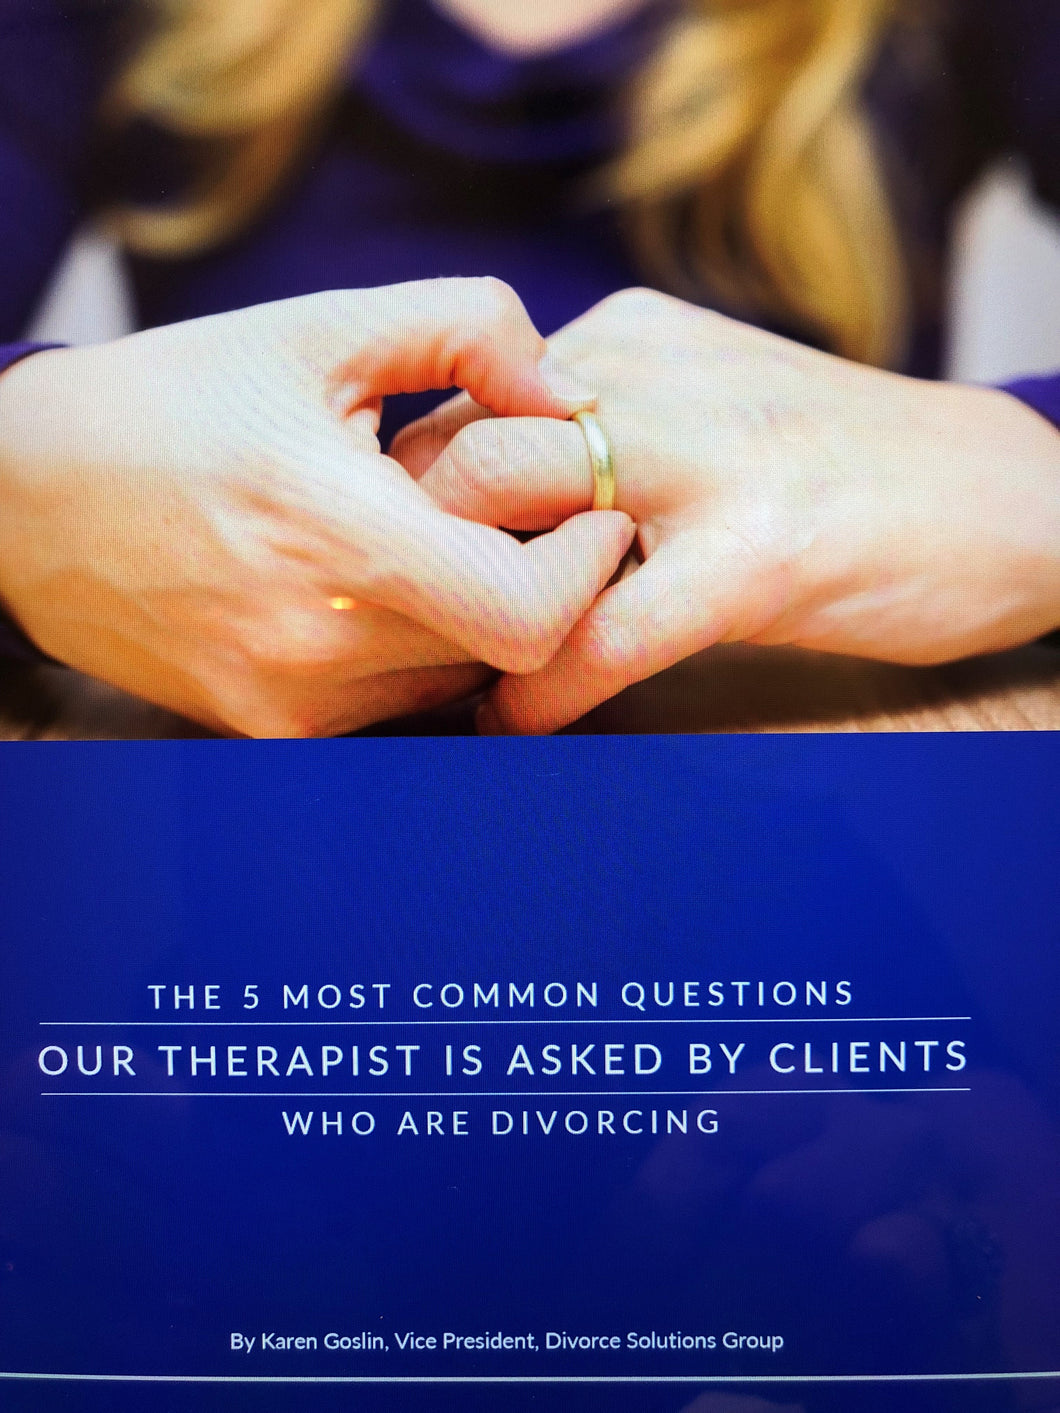 The 5 Most Common Questions Our Therapist is Asked by Clients Who Are Divorcing